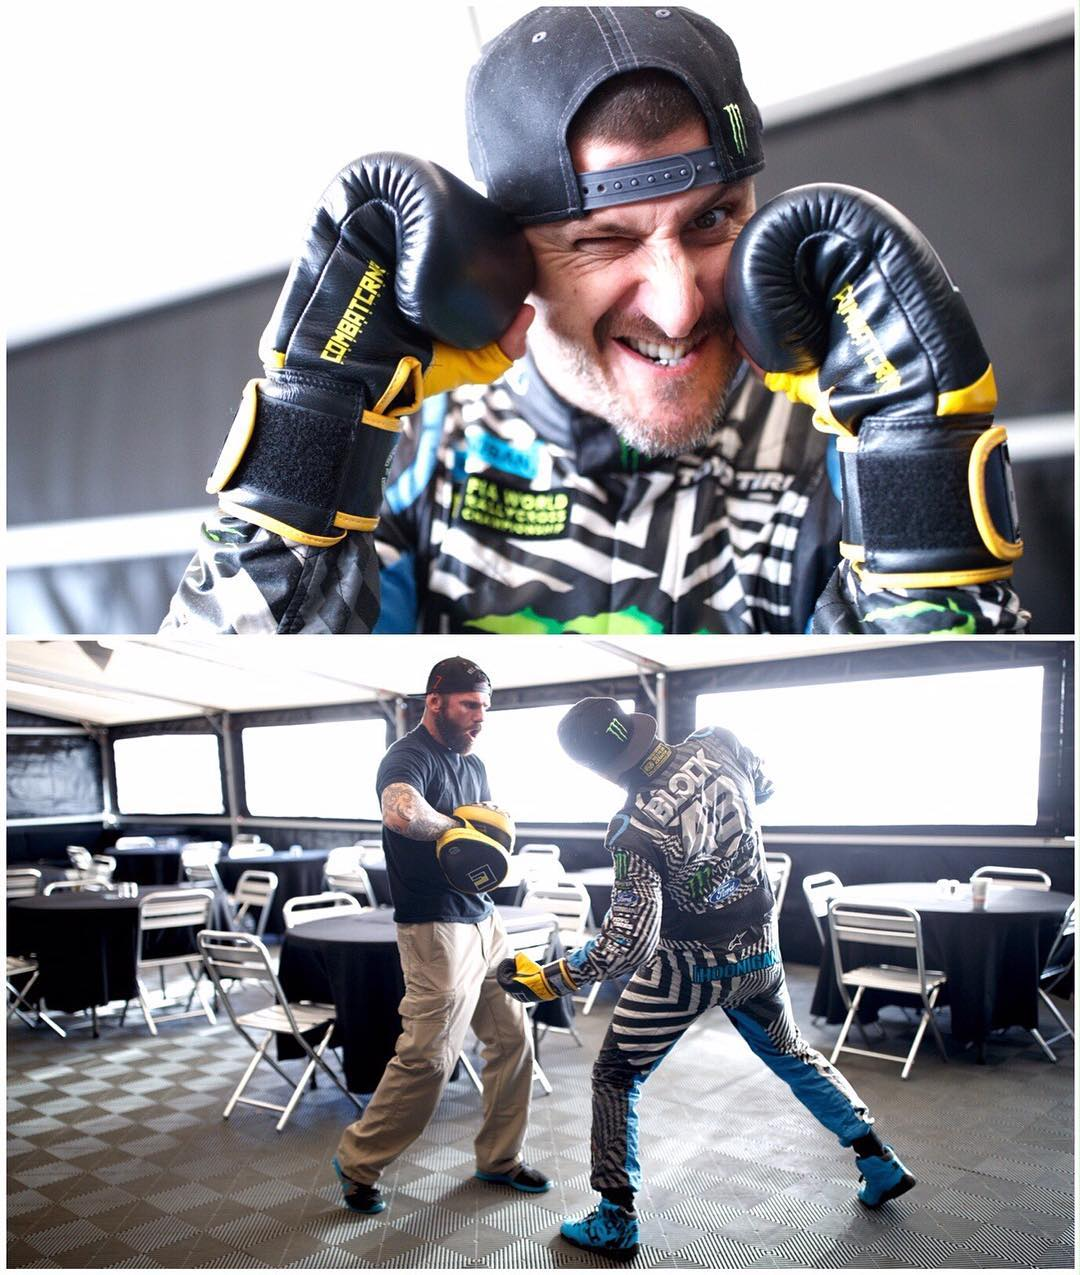 Here are some shots from a standard Saturday warmup session with our team trainer, Mr. @KitCope. If I'm doing pad work with Kit on a Saturday - whilst in my race suit - it can only mean one thing: it's race day! #kickboxingFTW #LatviaRX